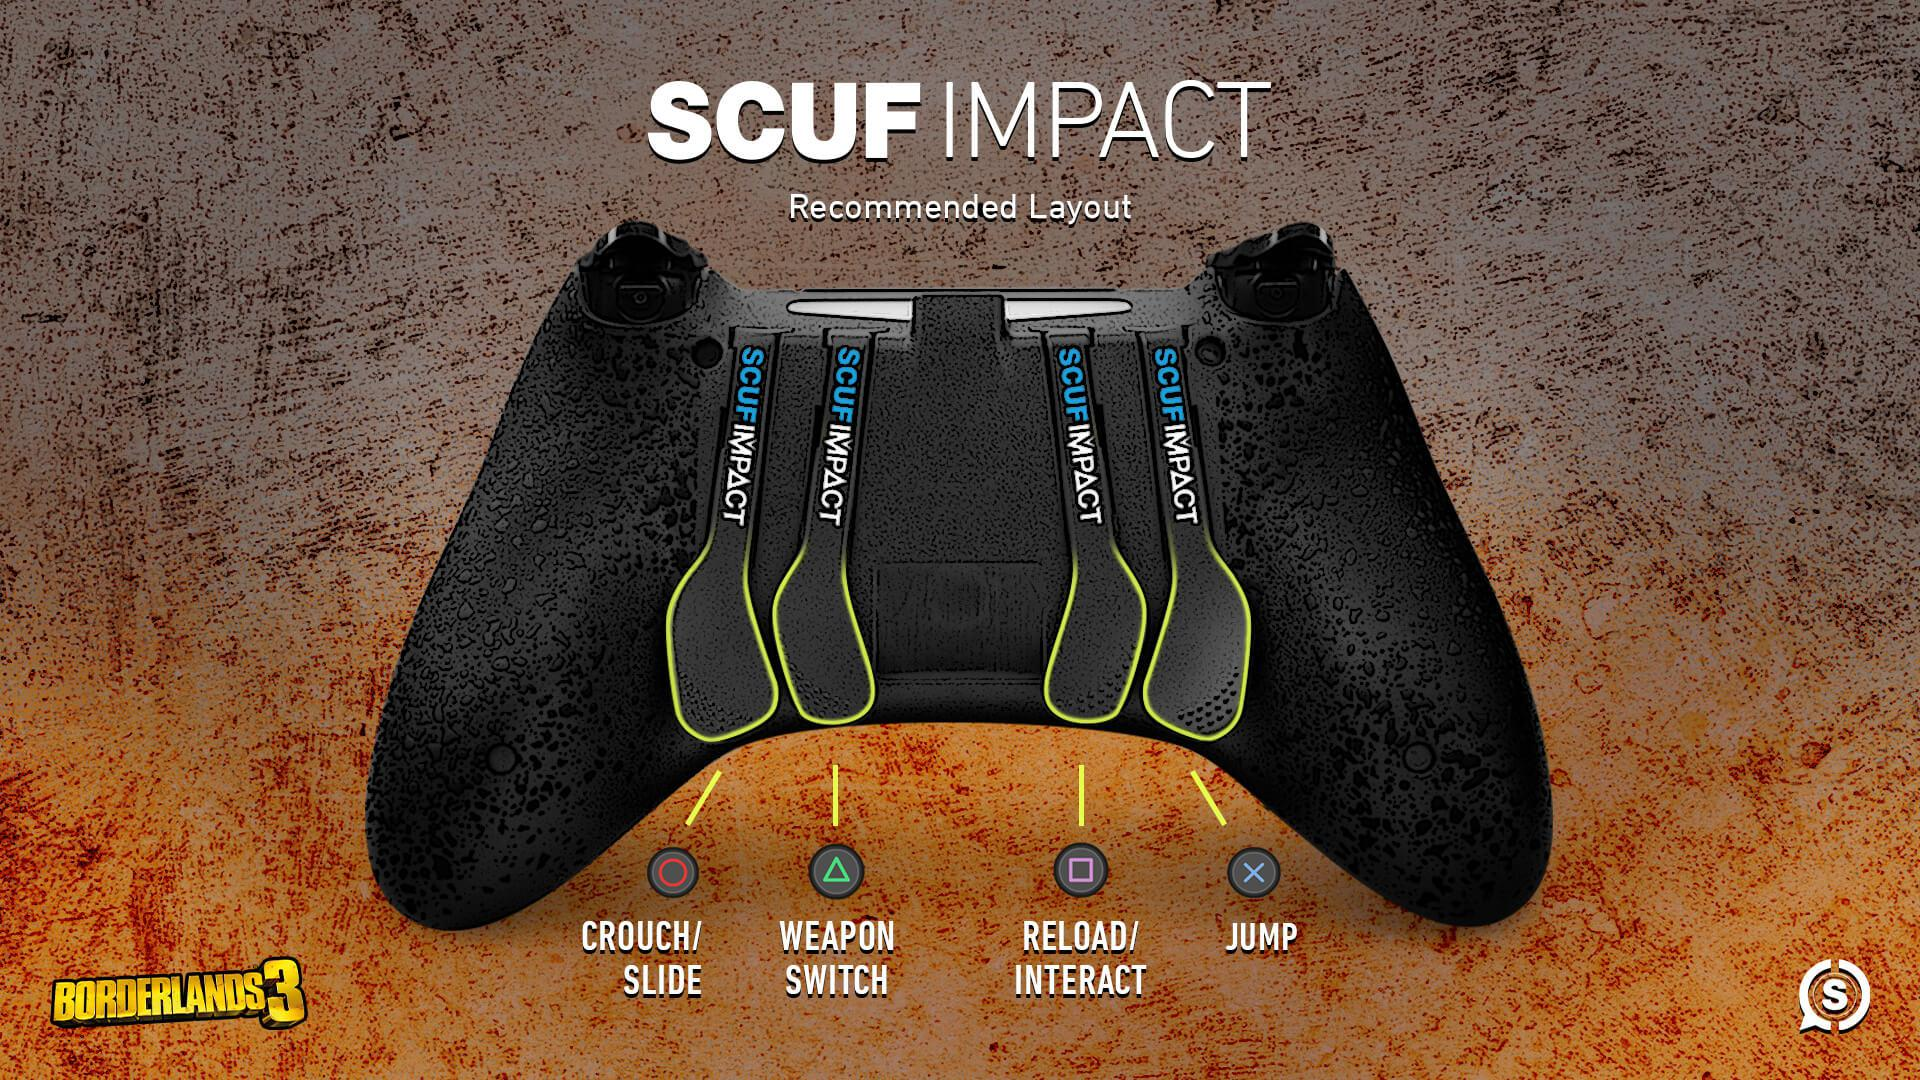 SCUF IMPACT Borderlands 3 configuration